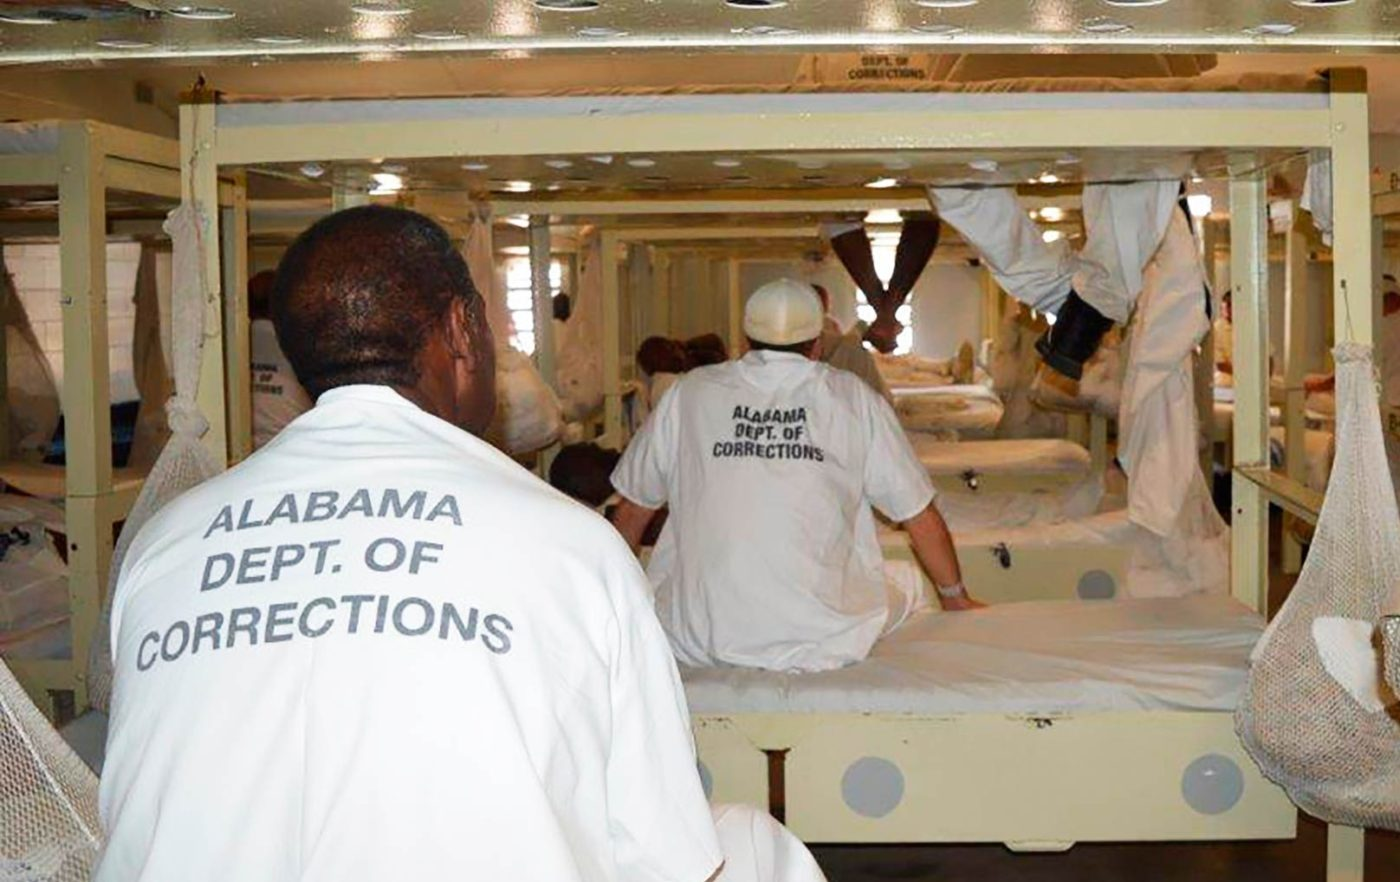 Alabama-prisoners-in-crowded-dorm-at-Staten-CF-in-Elmore-AL-1119-by-Kim-Chandler-AP-1400x882, Kinetic Justice: Terror on the plantation, Behind Enemy Lines